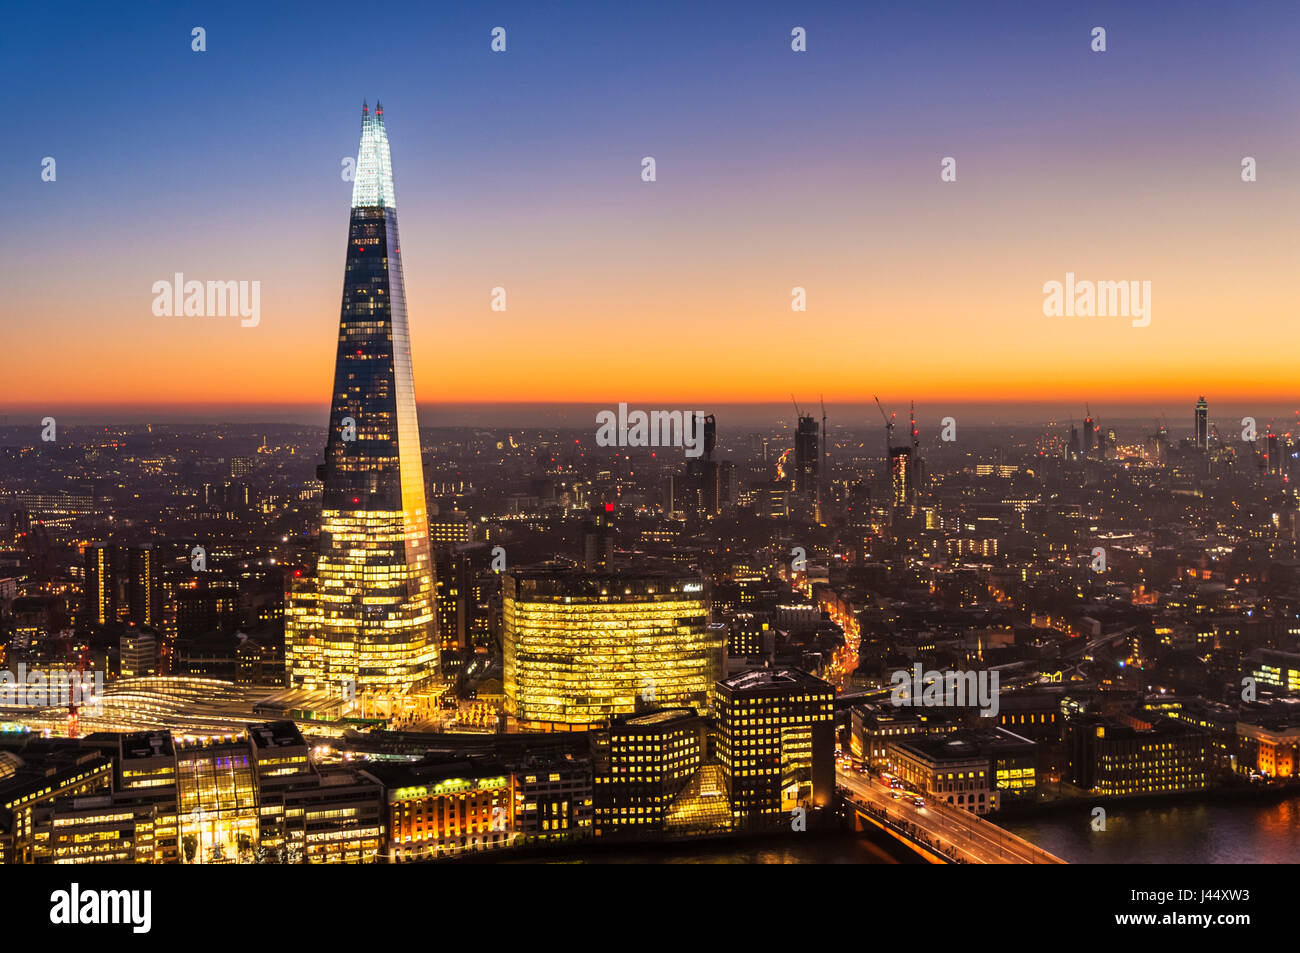 London Skyline Shard London Nacht der Shard London bei Nacht Sonnenuntergang sky London Skyline Nacht Großbritannien Stockbild